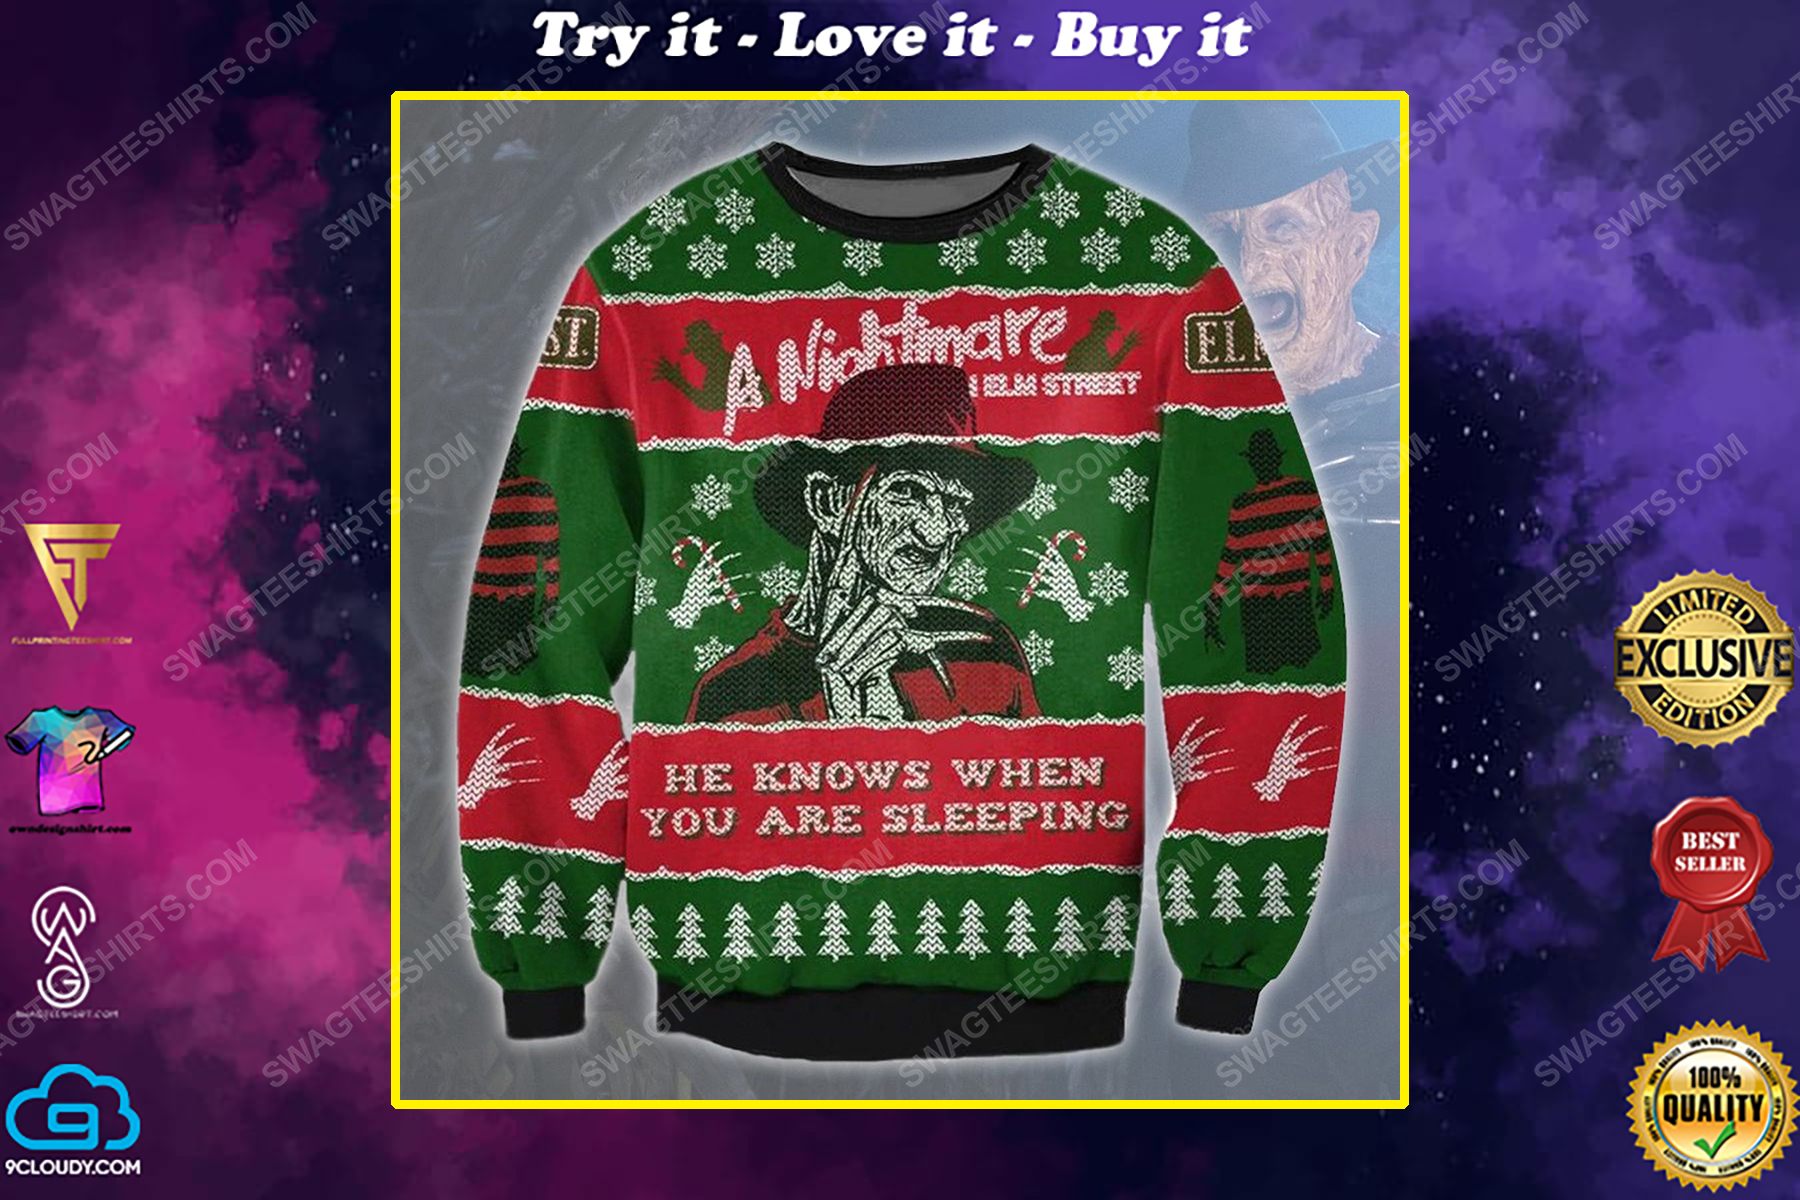 A nightmare on elm street he know when you are sleeping ugly christmas sweater 1